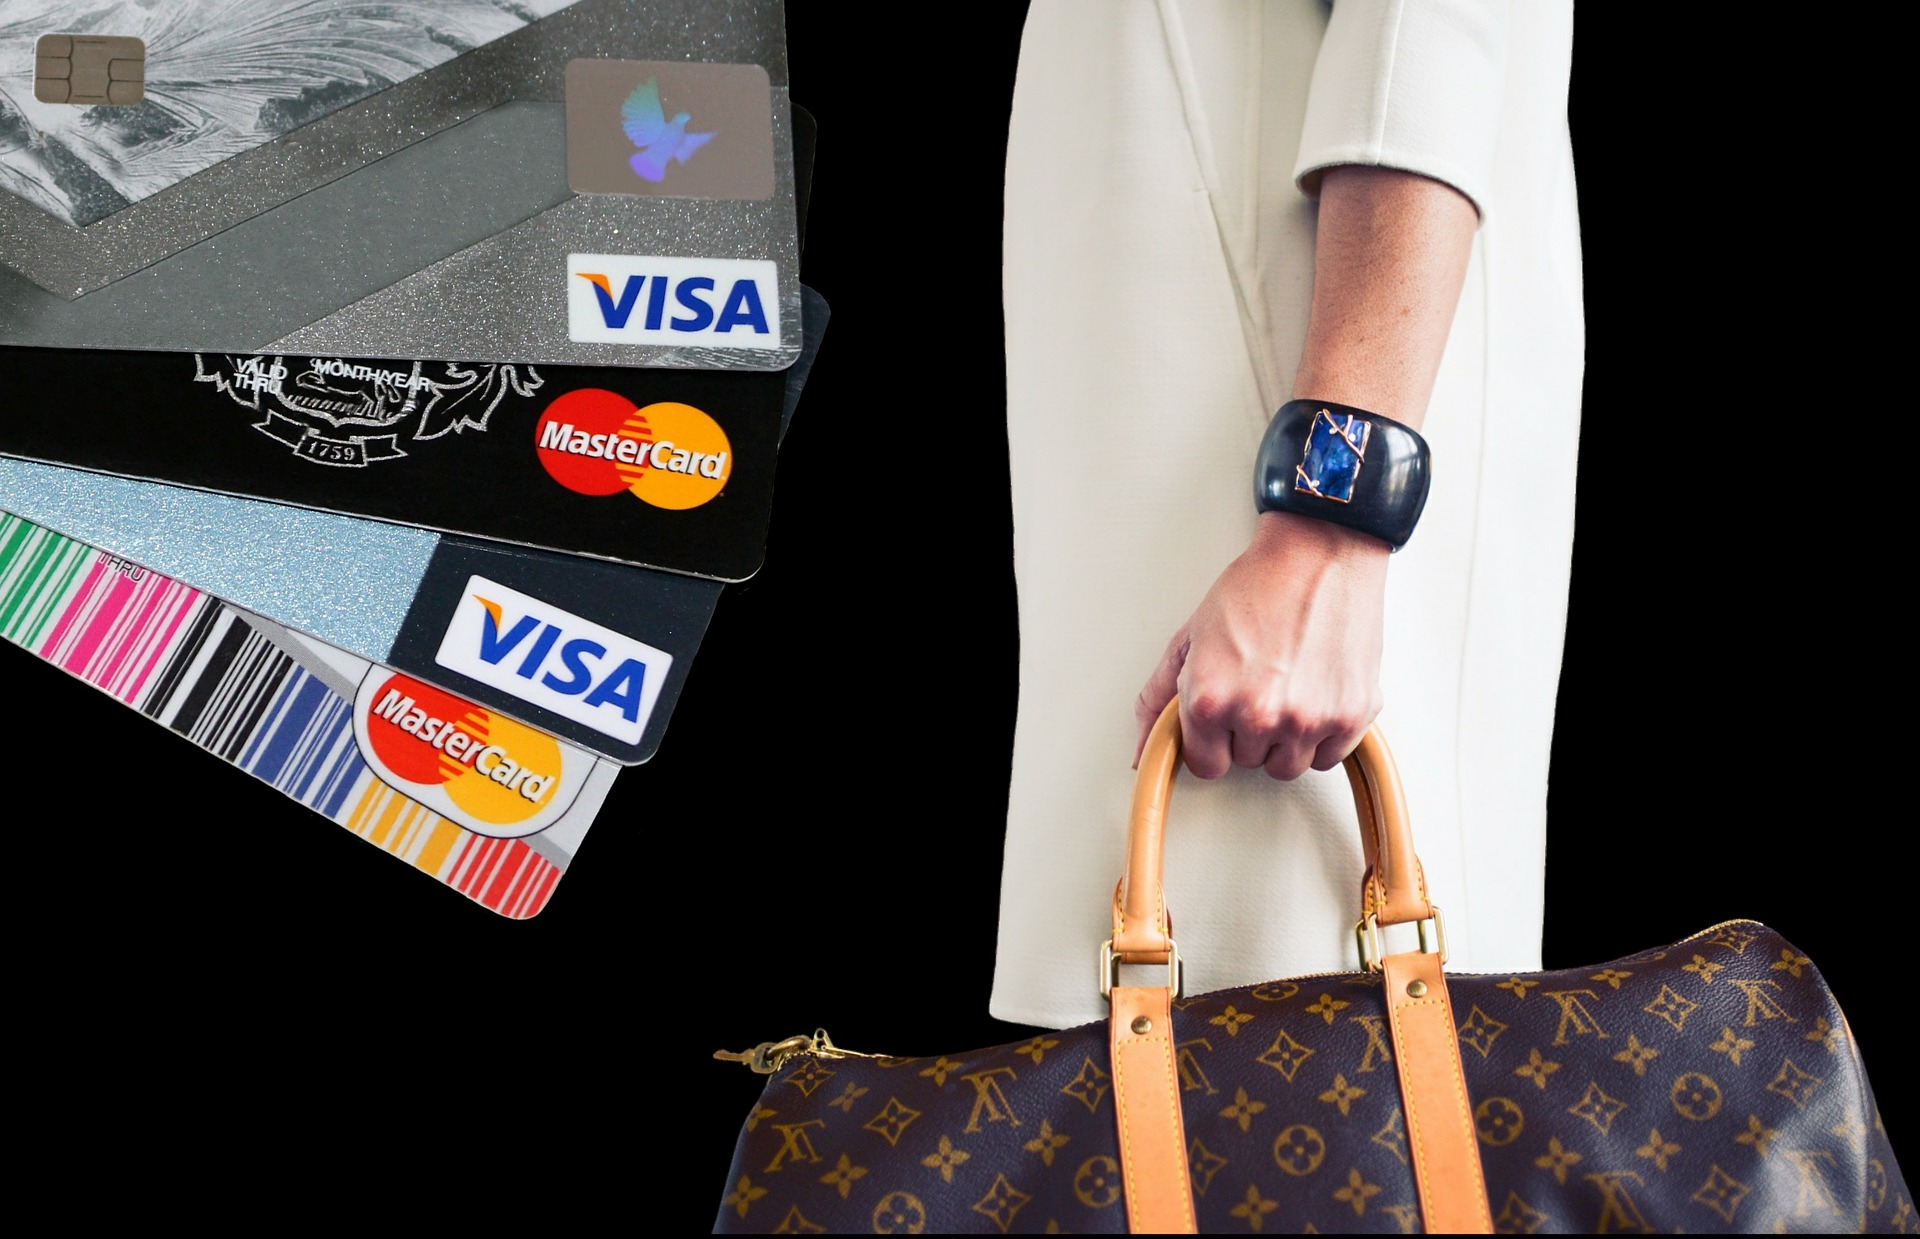 Shoping process with credit cards